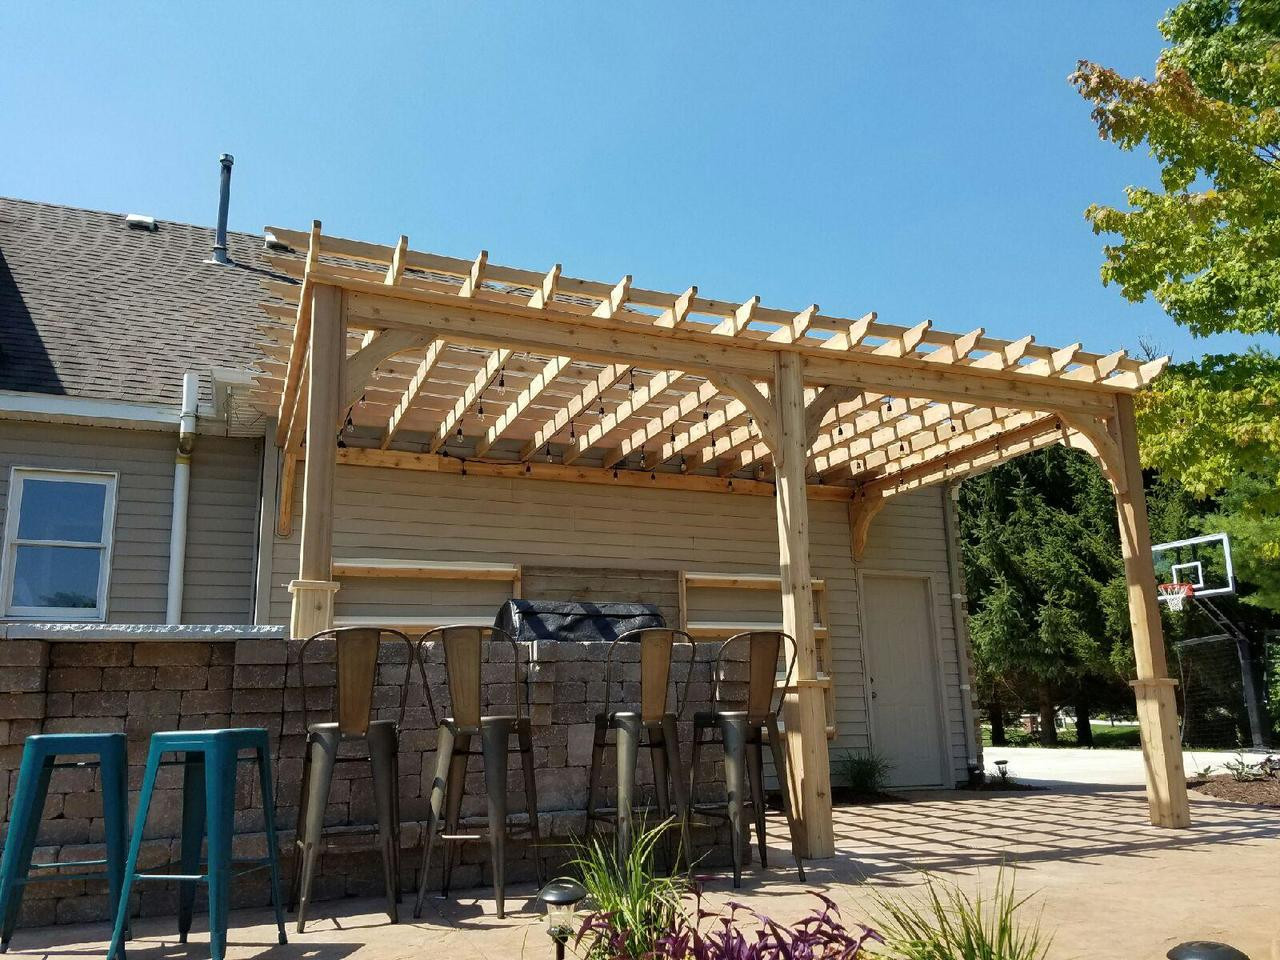 18' x 12' wall mounted Serenity Pergola Kit, Western Red Cedar, unstained, Saranac, MI.